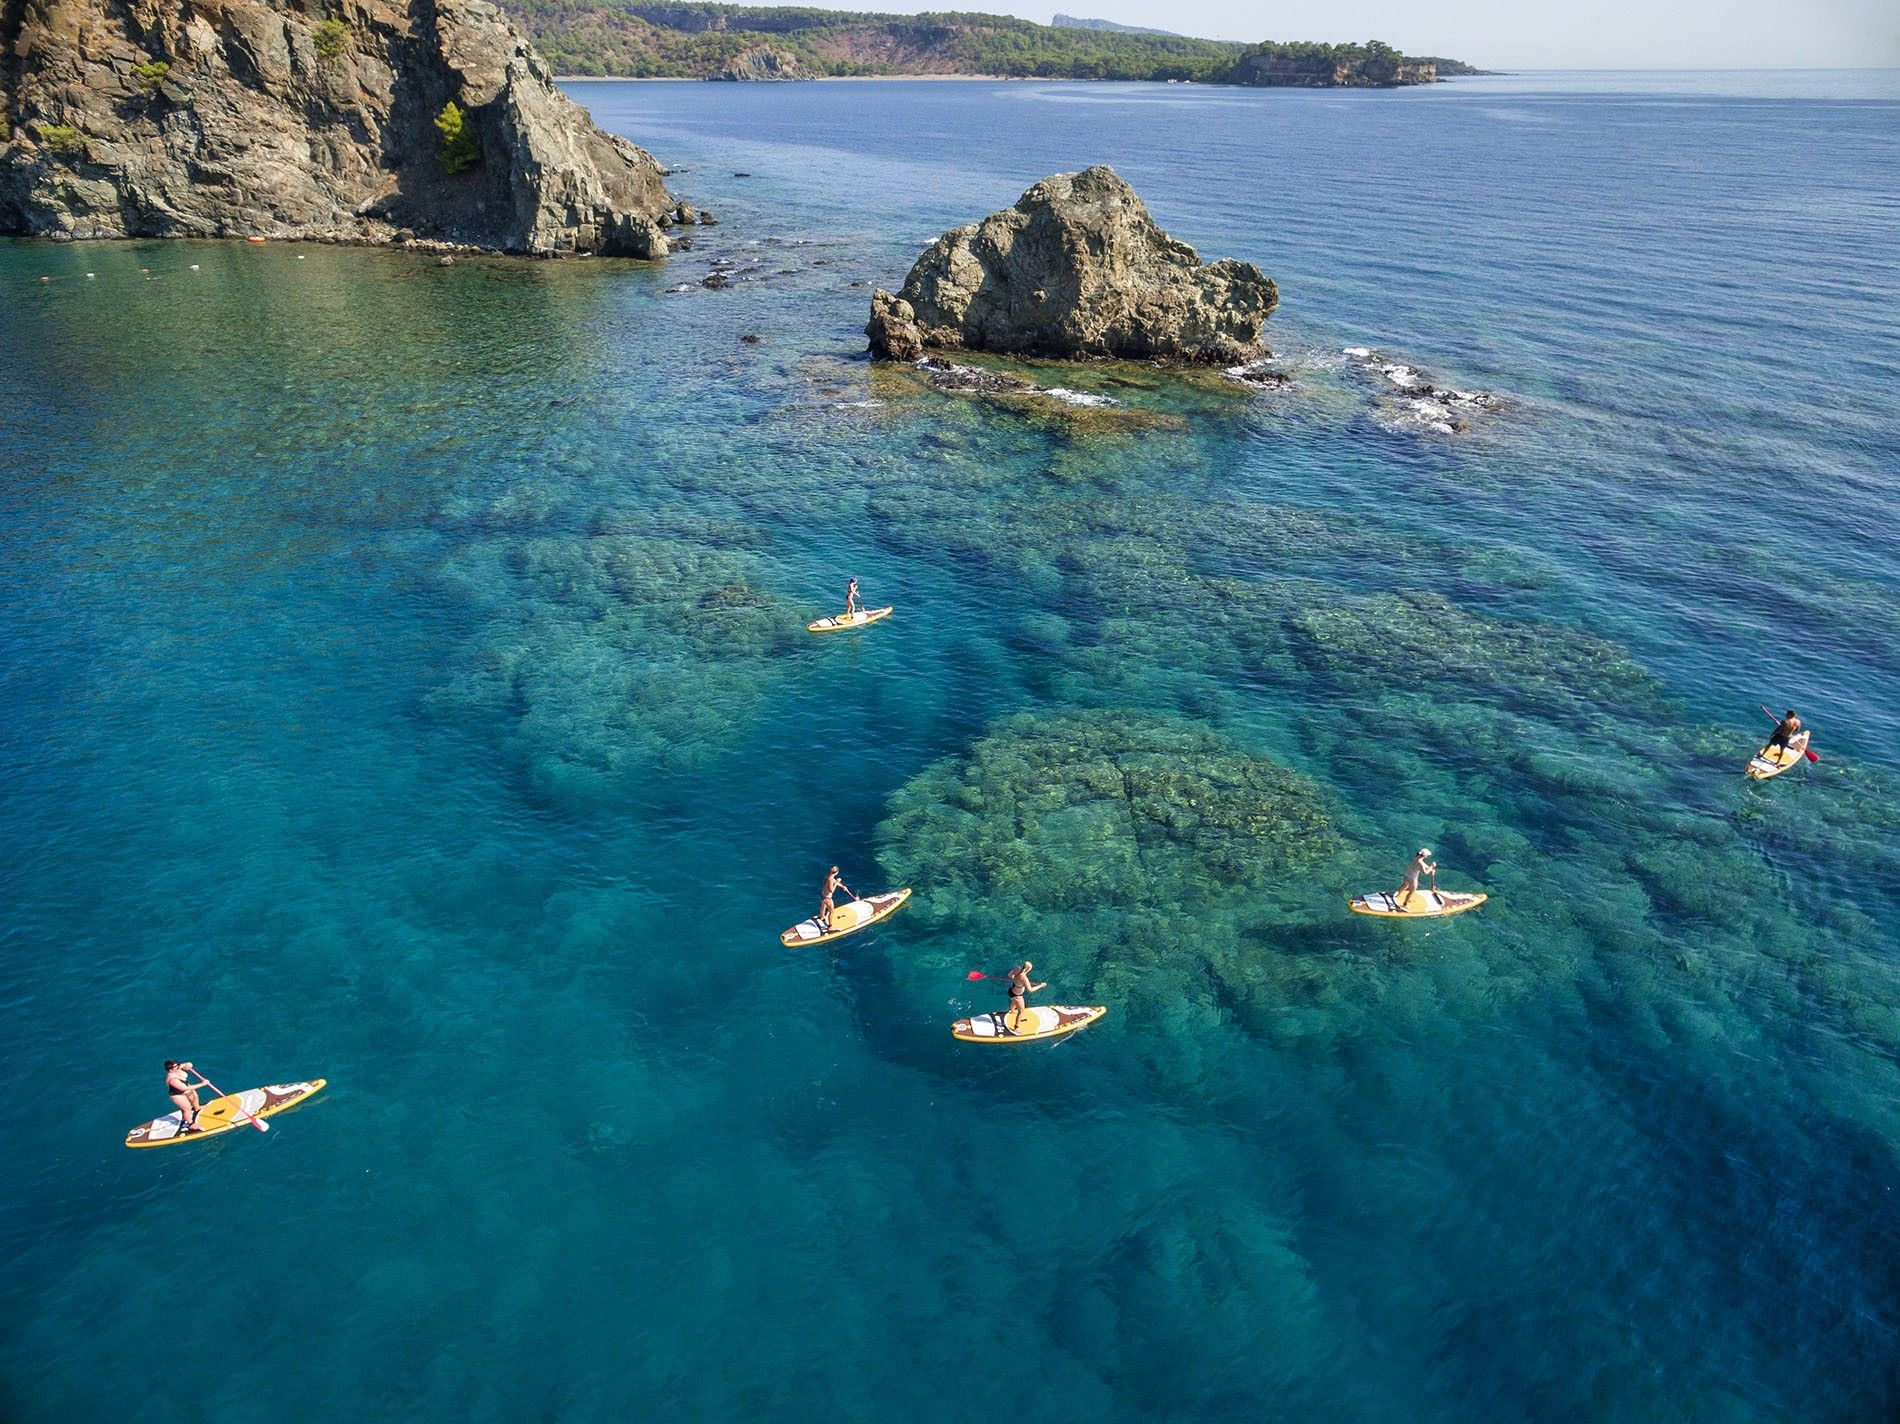 Stand up paddleboarding is a popular pastime in the Mediterranean off the coast of Turkey.